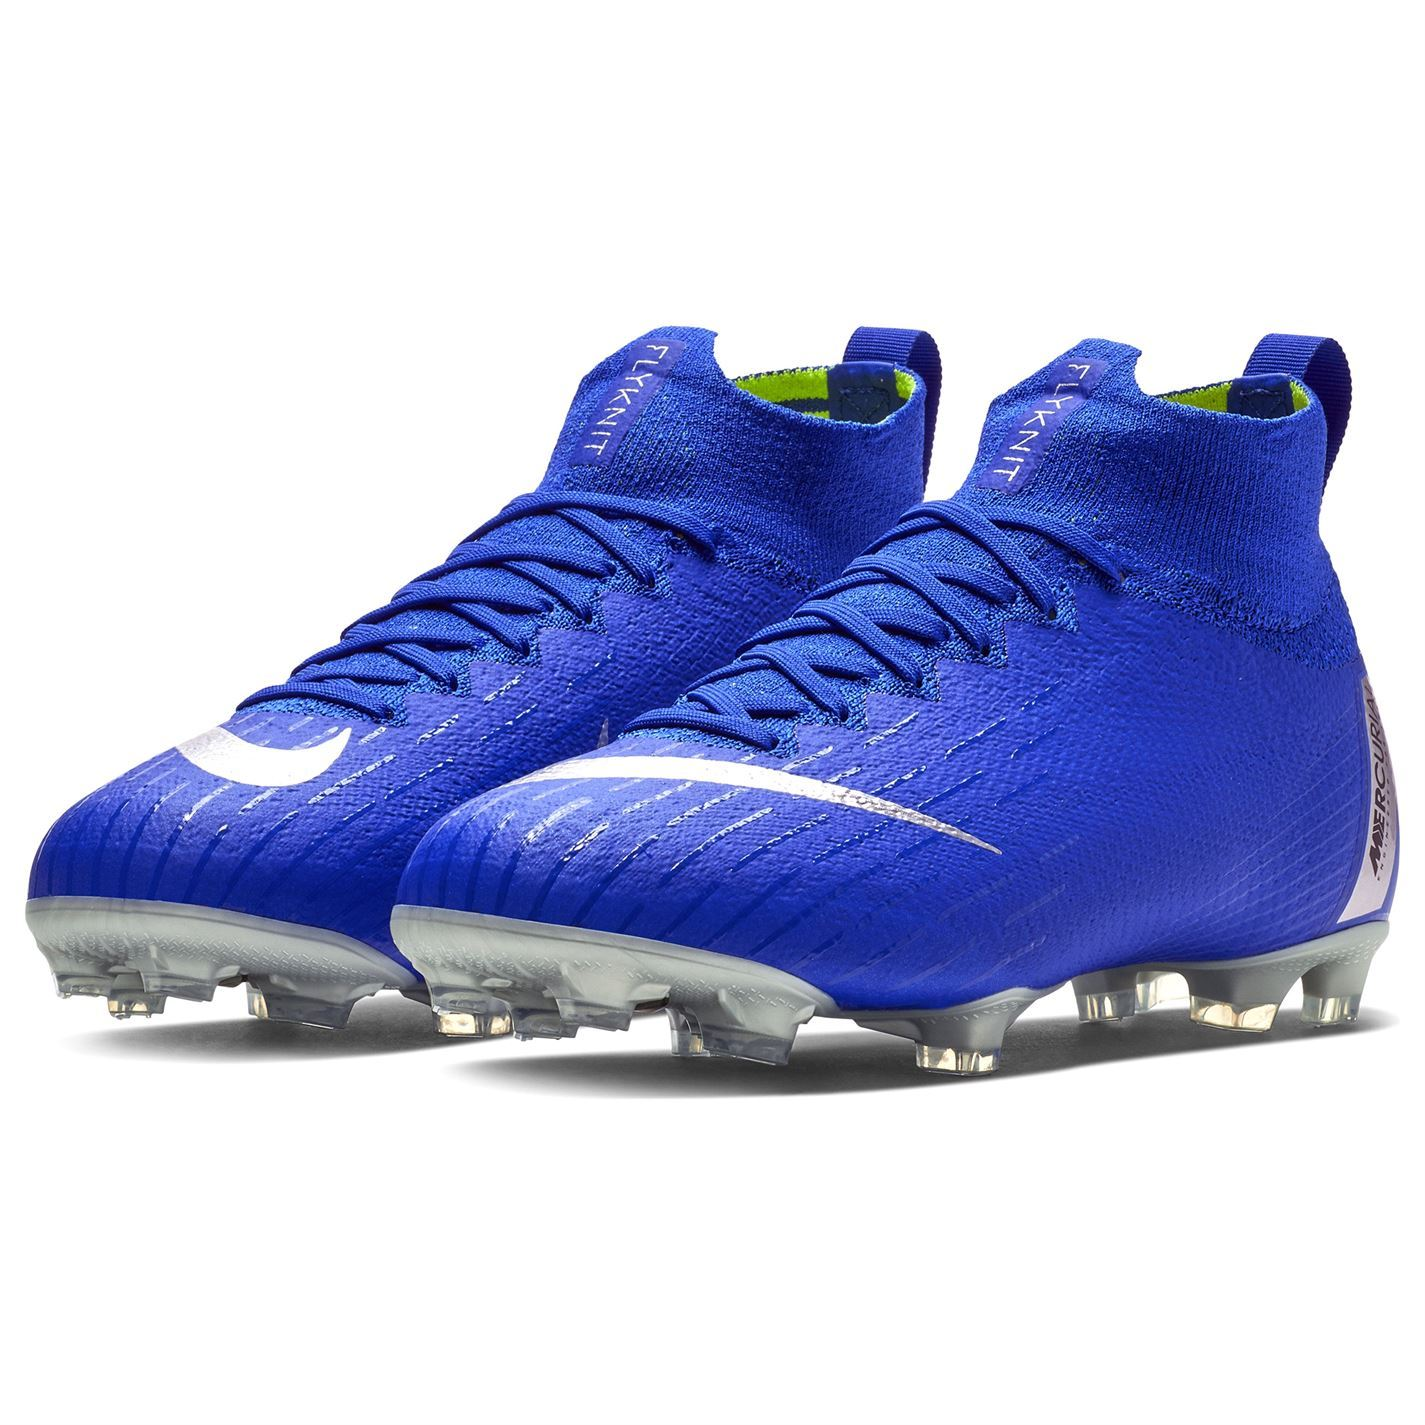 hot sale online 4244d 0fc68 ... Nike Mercurial Superfly Elite Football Boots Firm Ground Juniors Soccer  Cleats